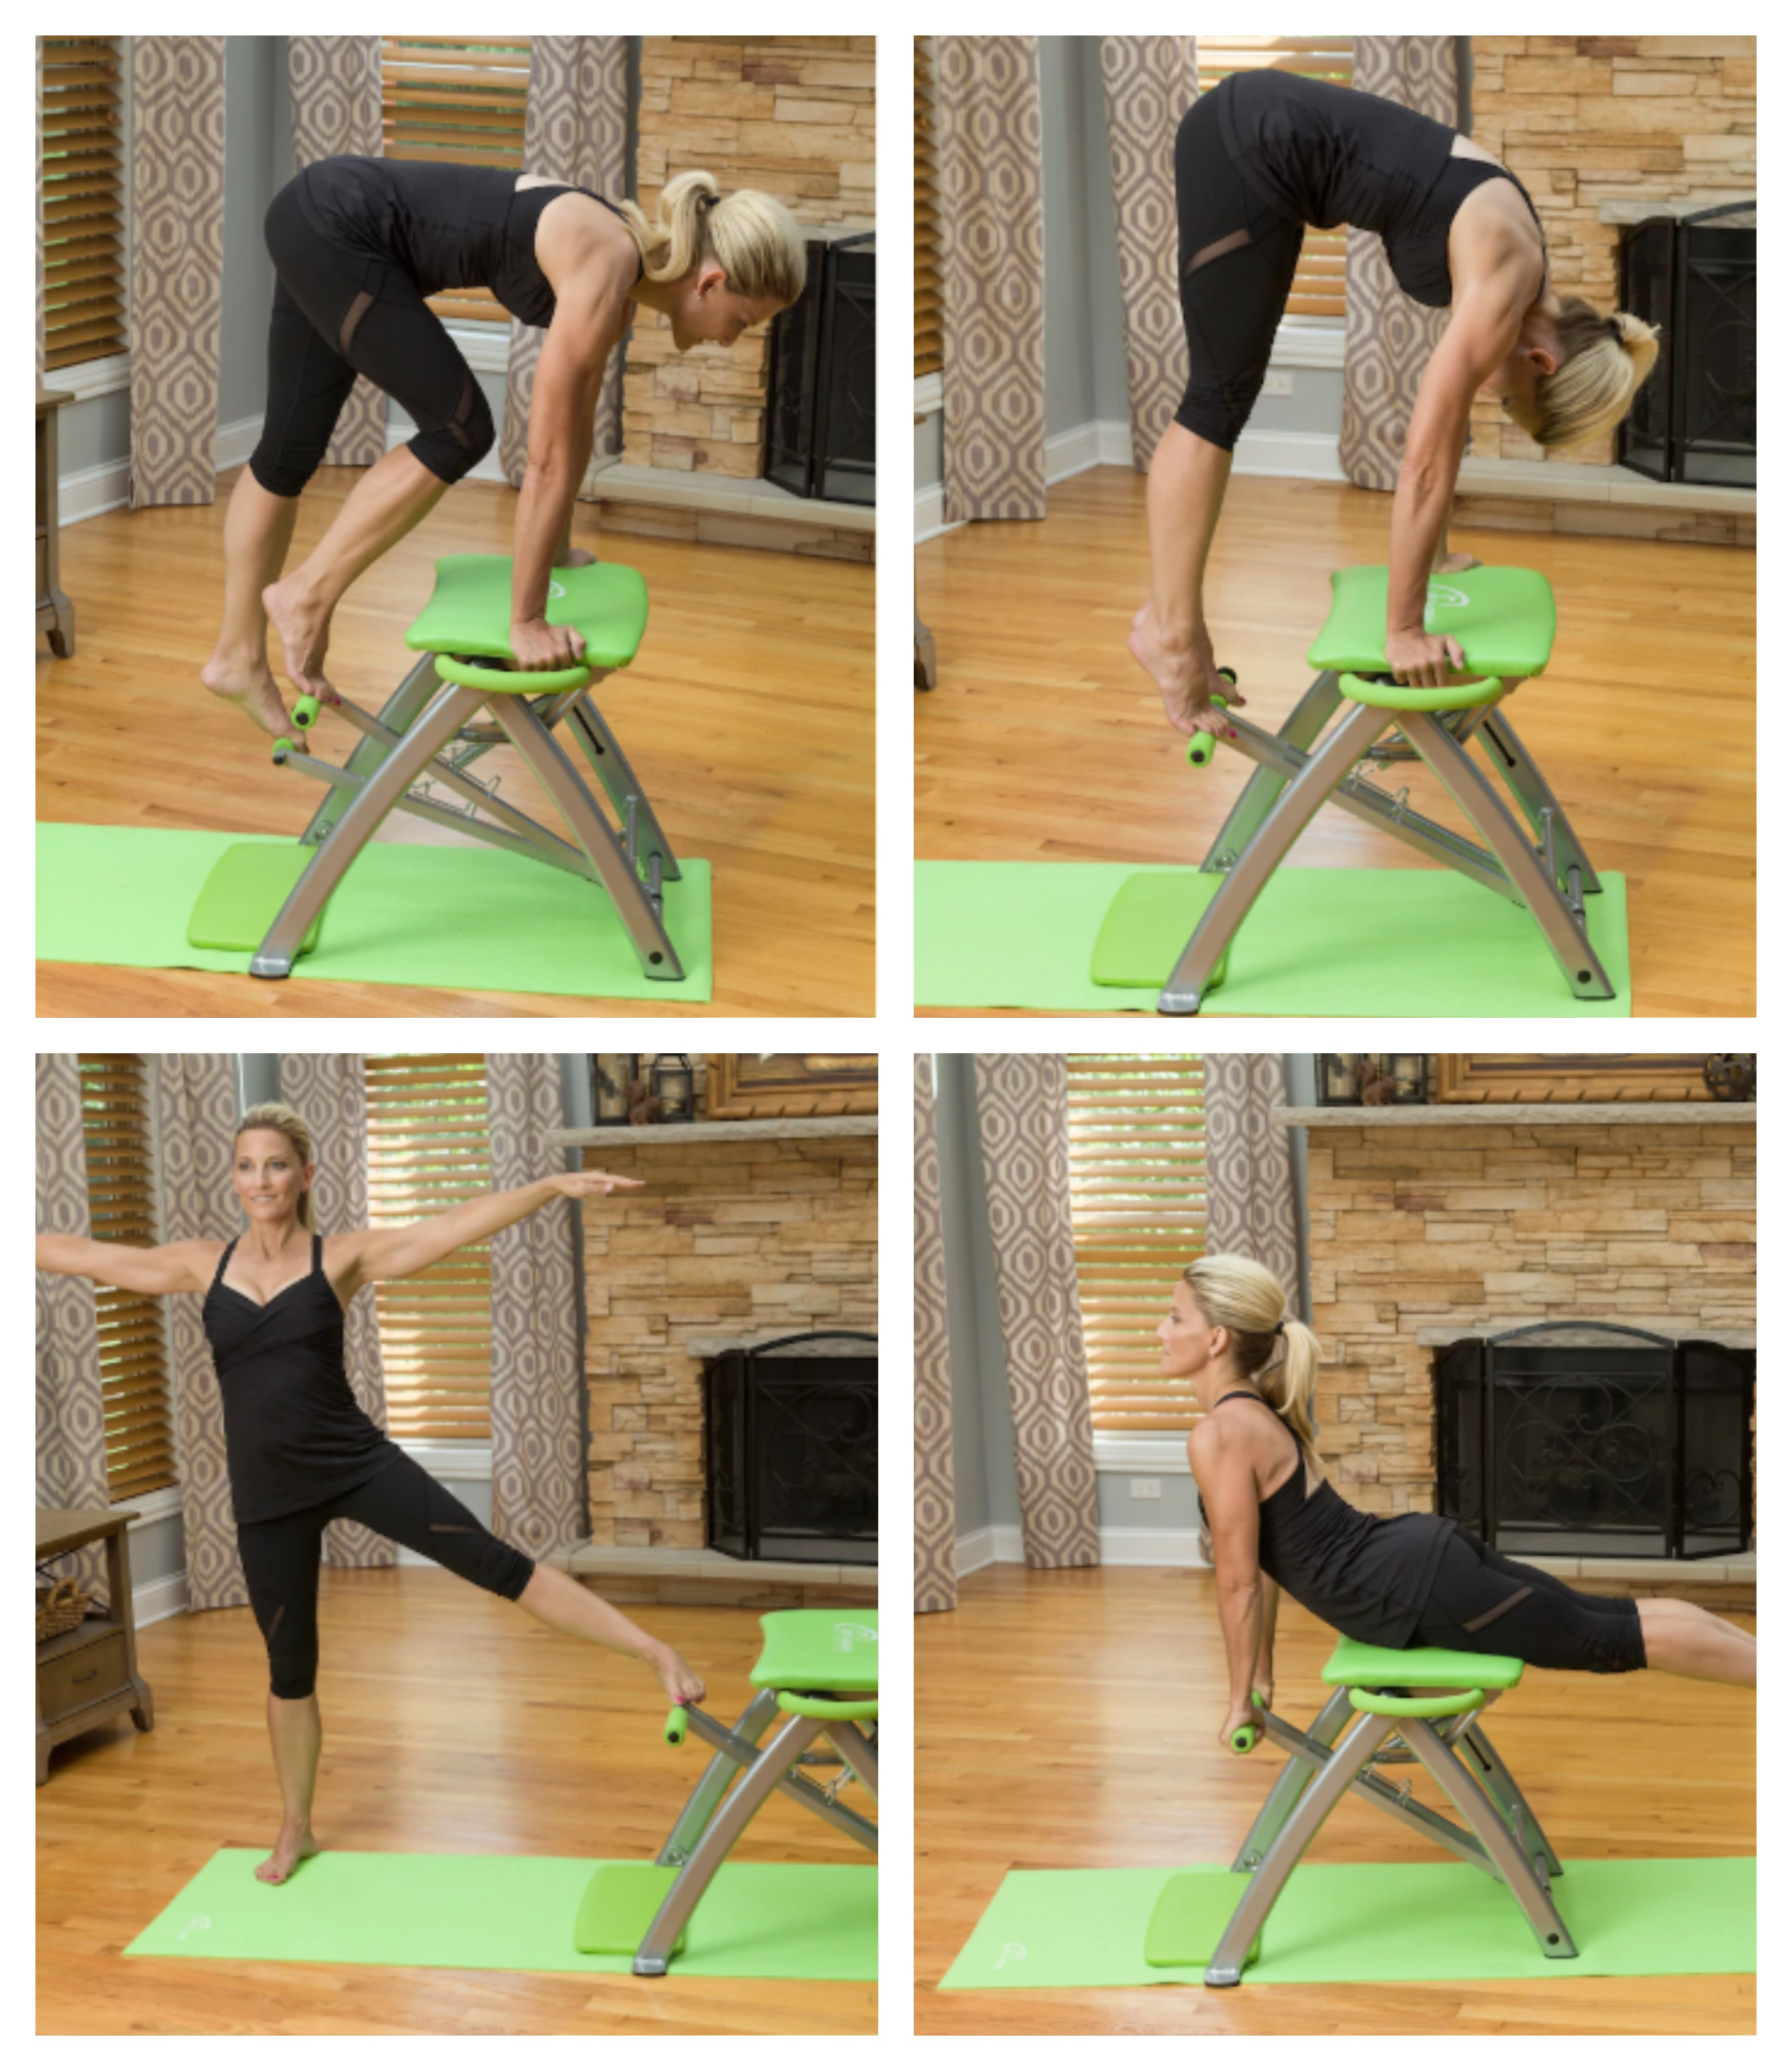 Fitness Beach Dvd: NEW, Pilates PRO Chair With Sculpting Handles And Workout